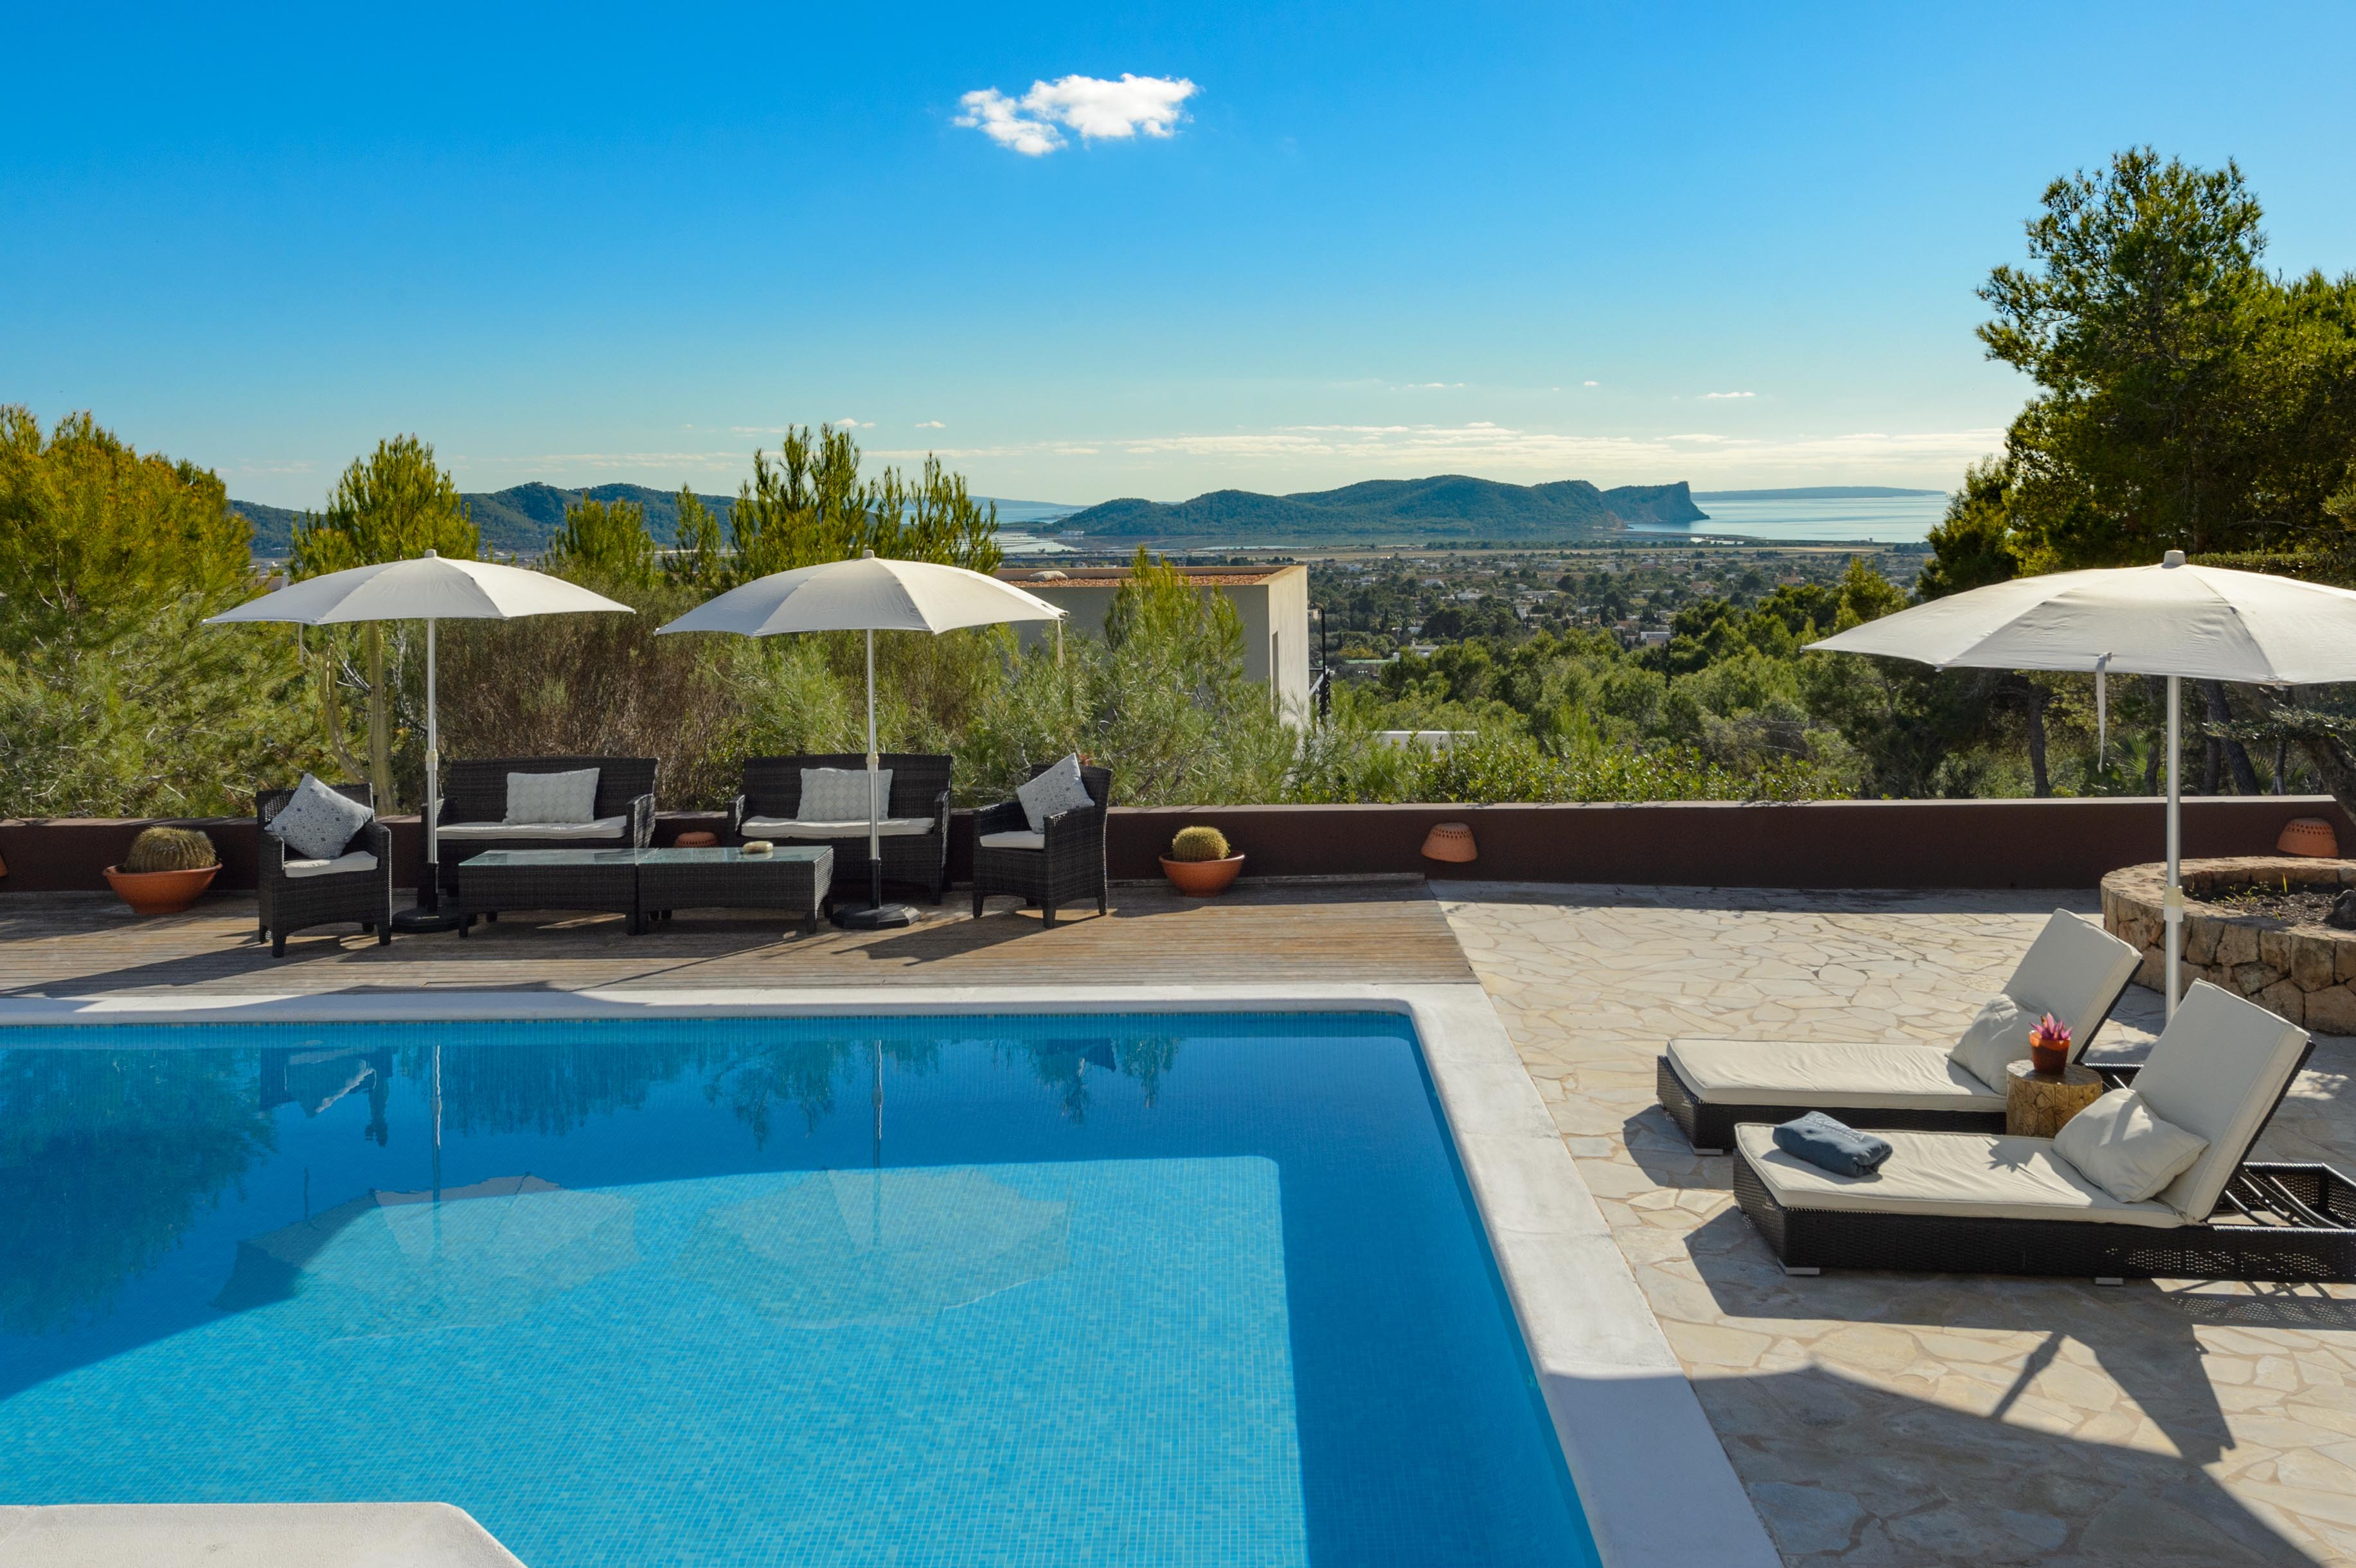 luxury villa rental, Spain, ESPIBI 1801